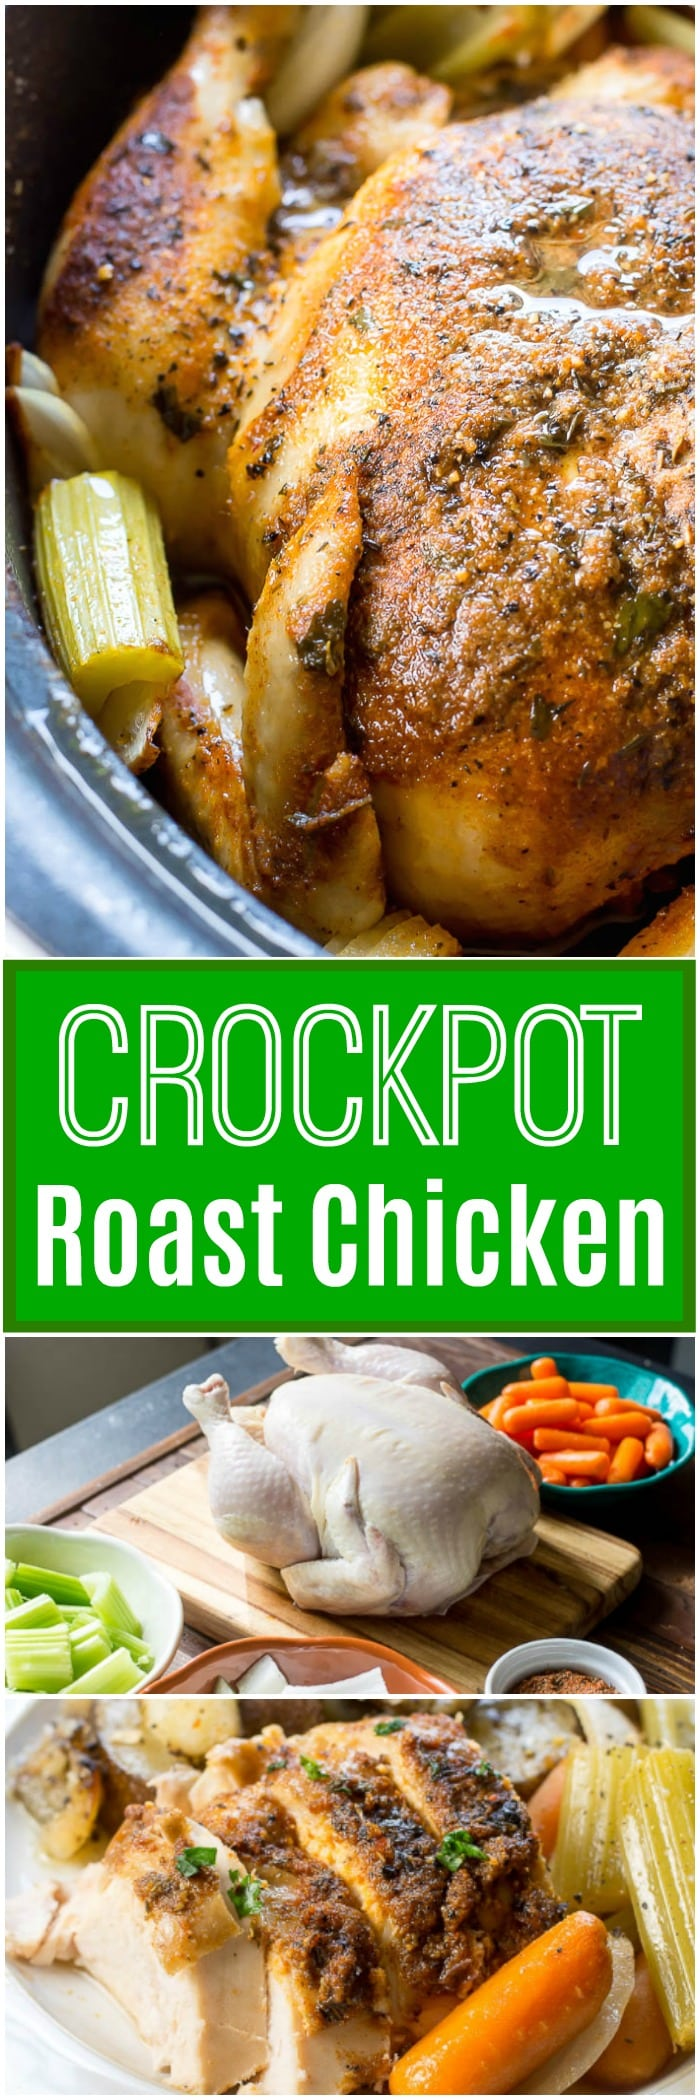 Crockpot Roast Chicken - Crock Pot or Slow Cooker Roast Chicken